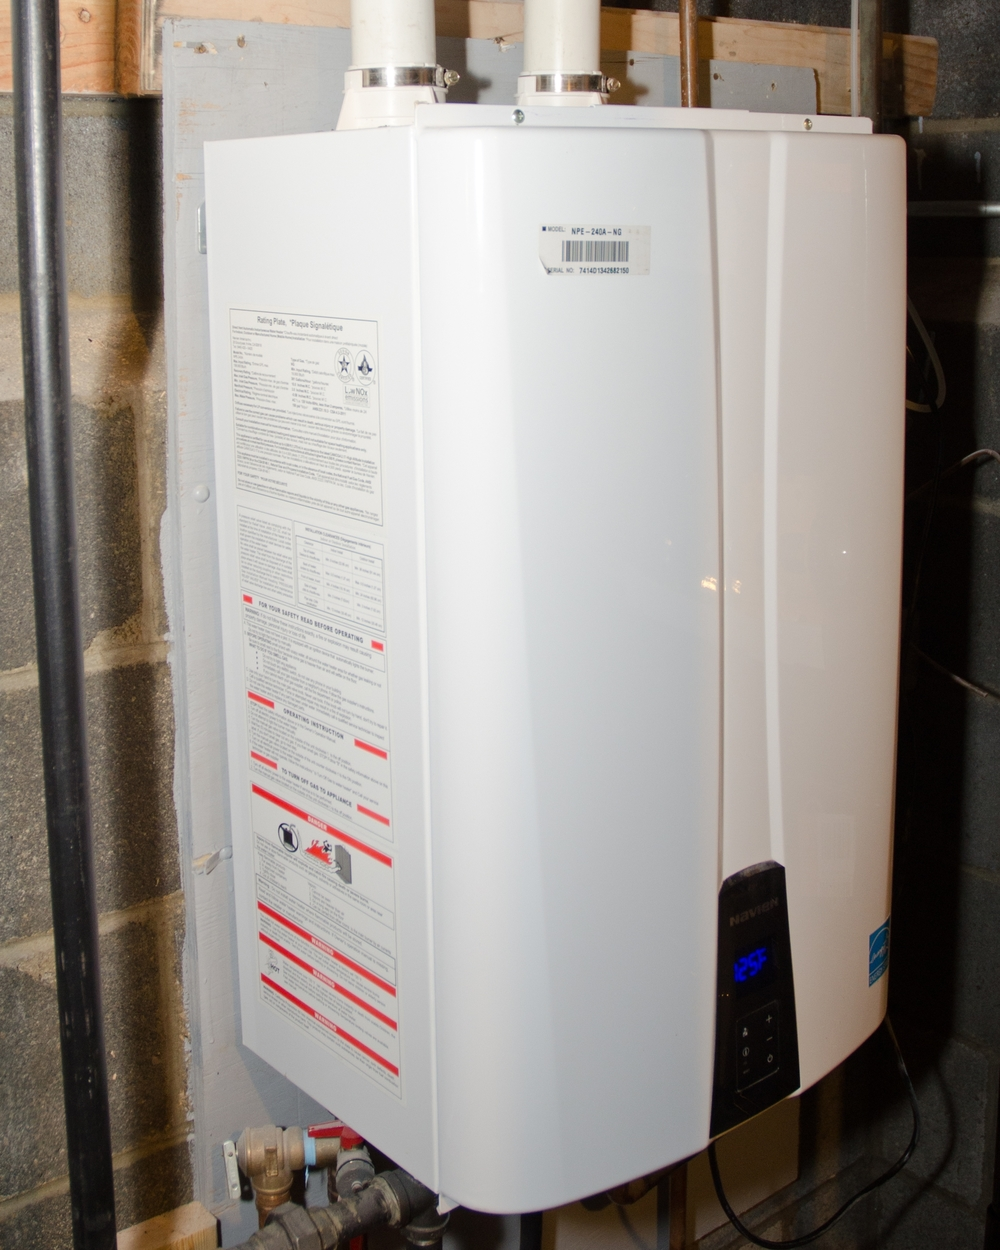 On demand hot water heater.  Unlike a standard tank hot water heater that fires consistently to maintain tank temperature, our installed Navien NPE 240-A doesn't utilize any significant amount of energy unless hot water is being used.  It is also direct vented to the exterior putting the Carbon Monoxide outside and alleviating orphaned hot water heater issues such as spillage. Points for IAQ and Energy Use Reduction.